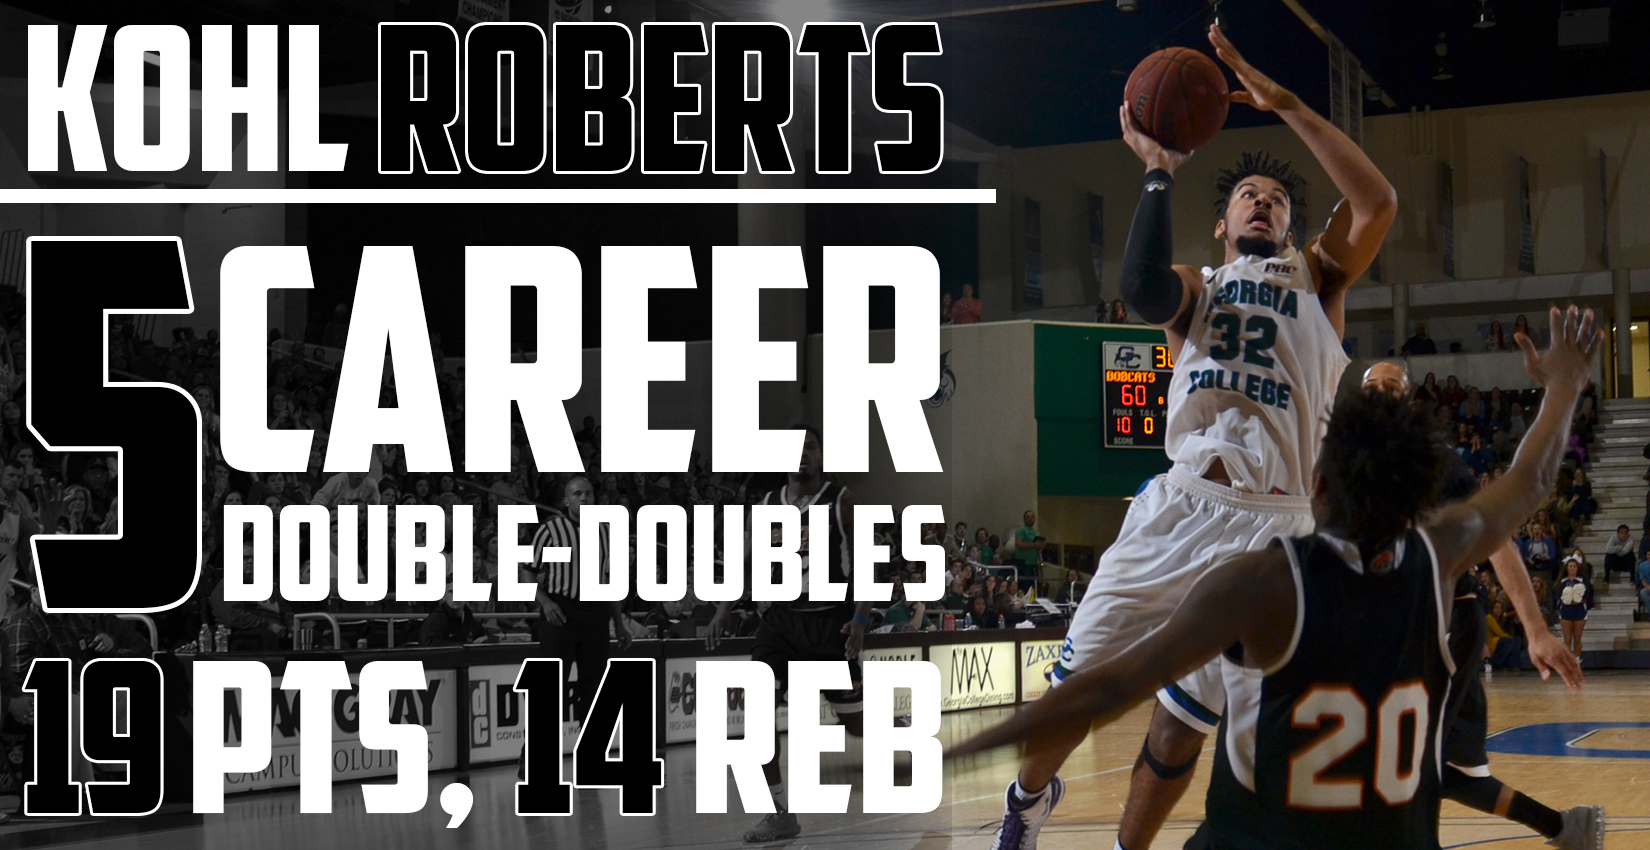 Kohl Roberts had his fifth-career double-double with 19 points and 14 rebounds.